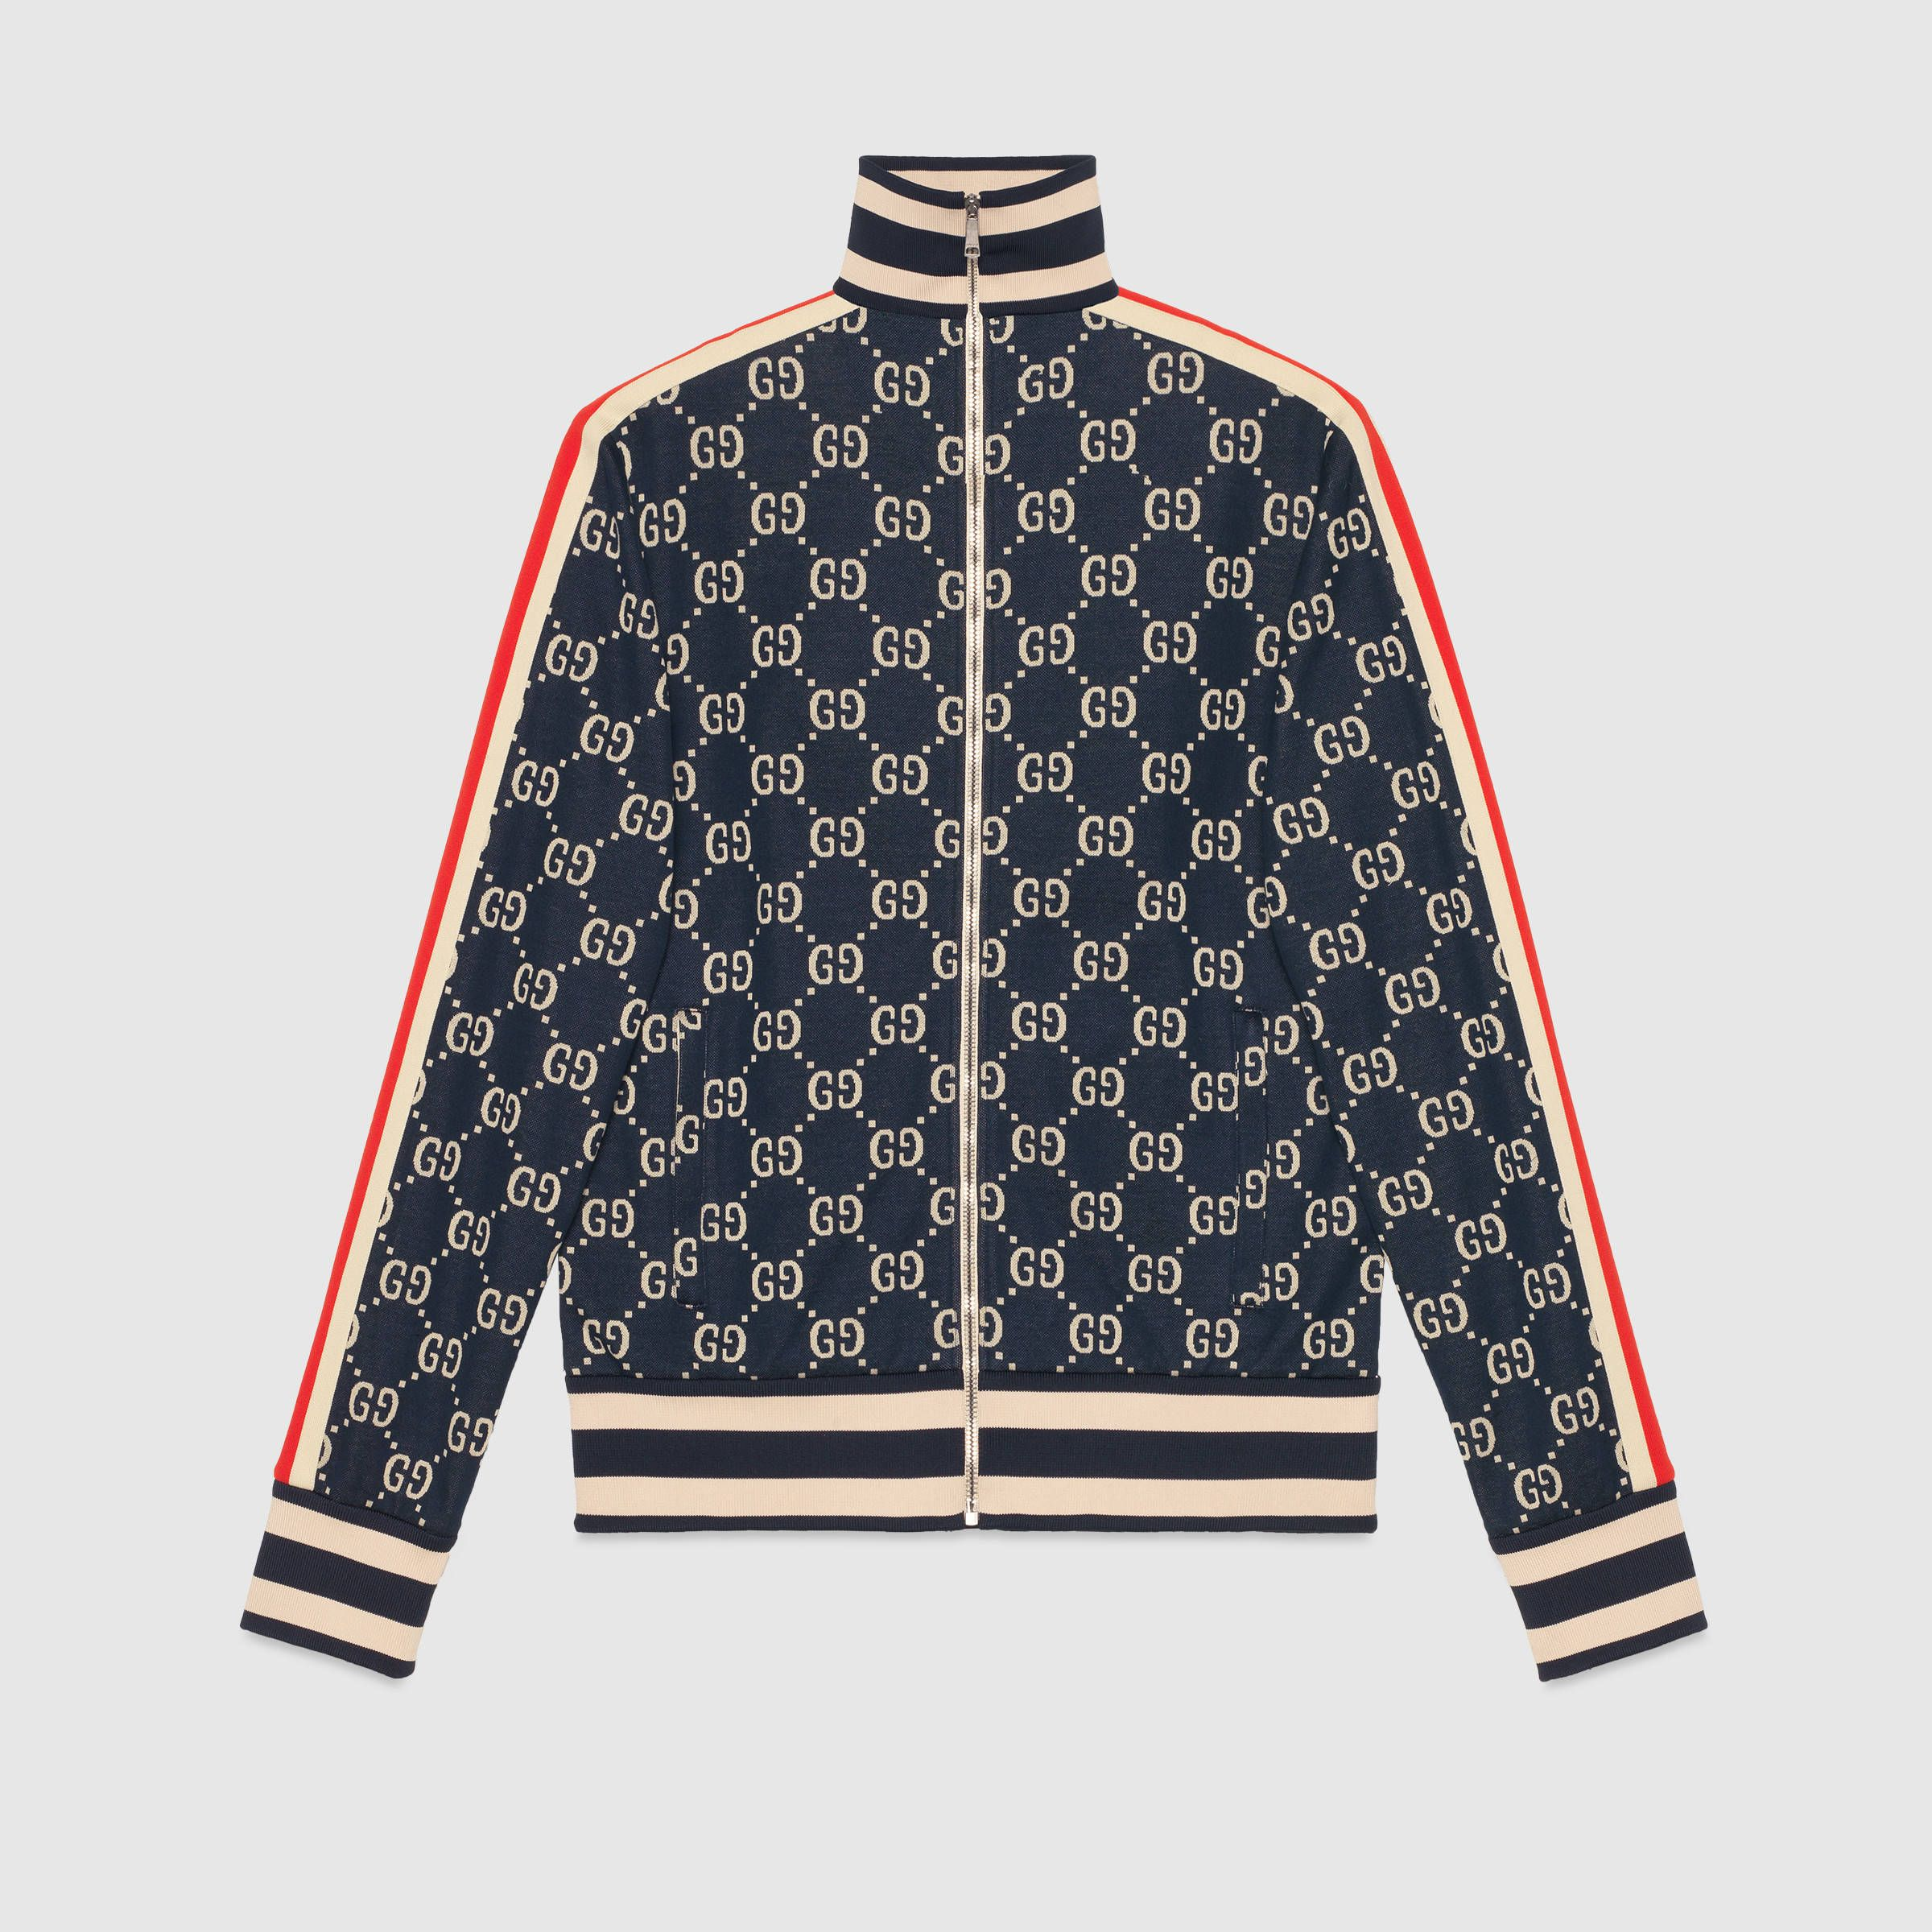 600d3907a GG jacquard cotton jacket in 2019 | Tracksuit jacket | Cotton jacket ...